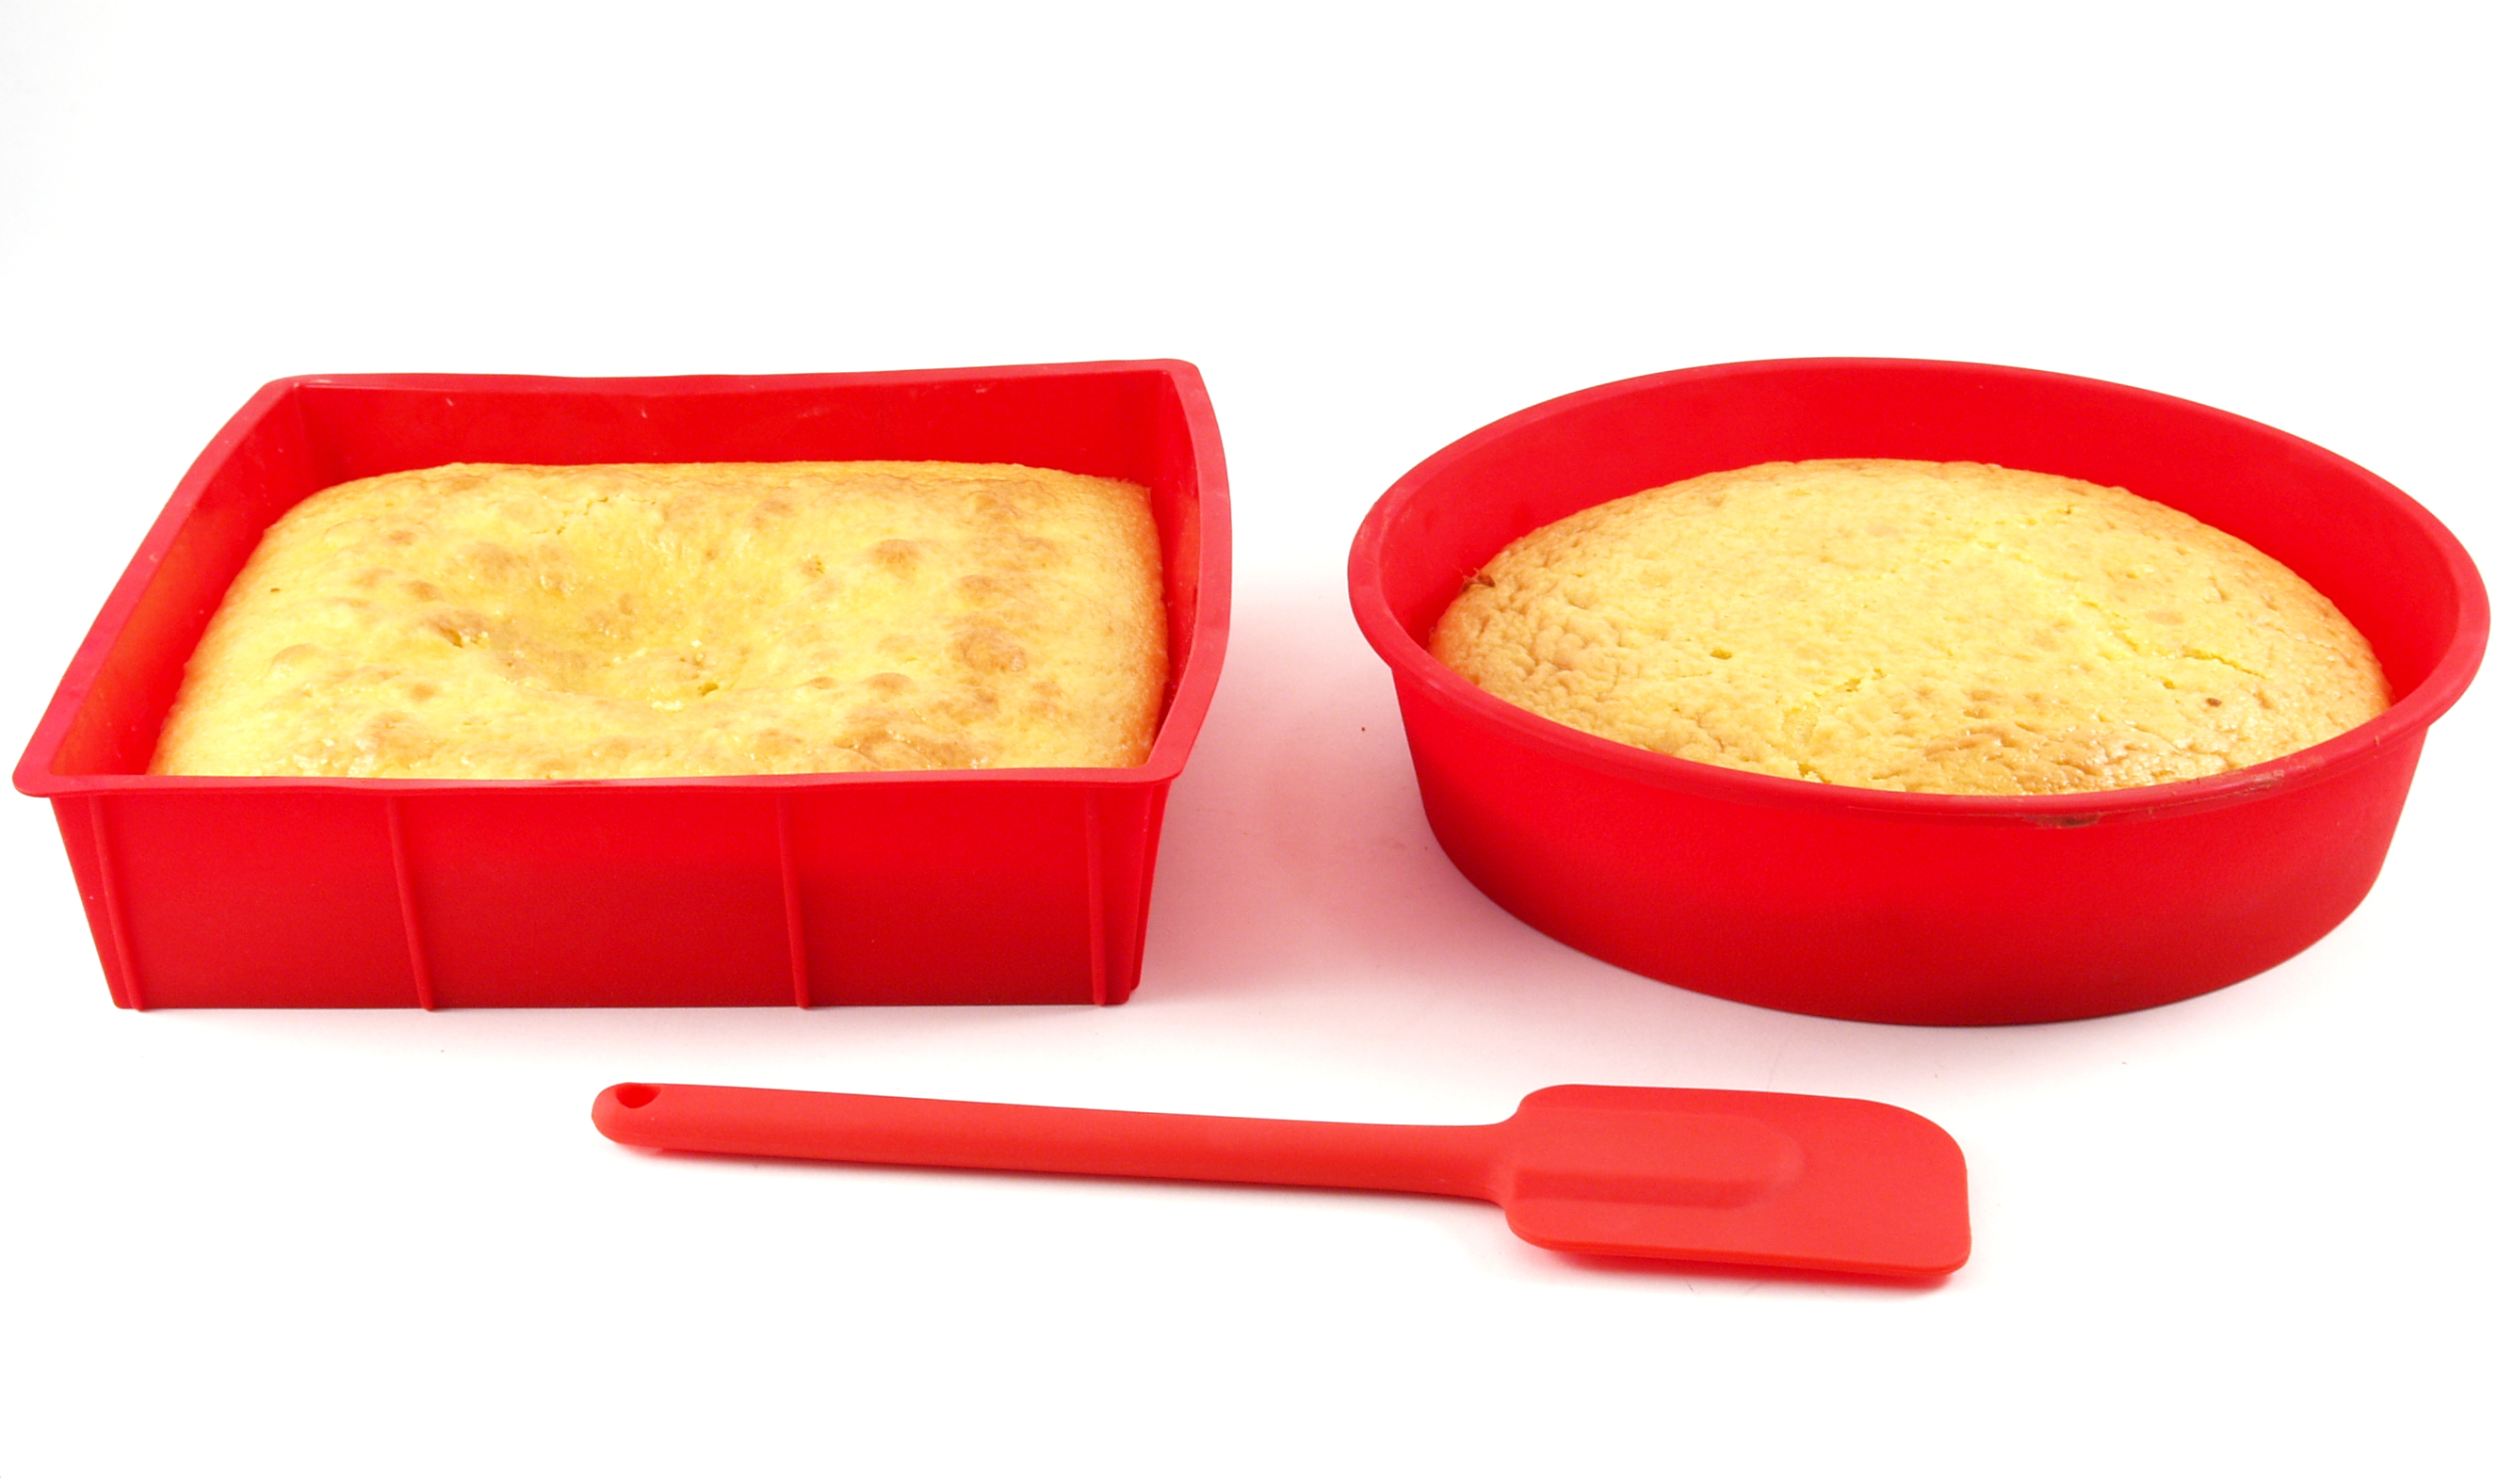 HIC Essentials Red Silicone Valentine's Day Practical Heart Cake Kit with Scraper